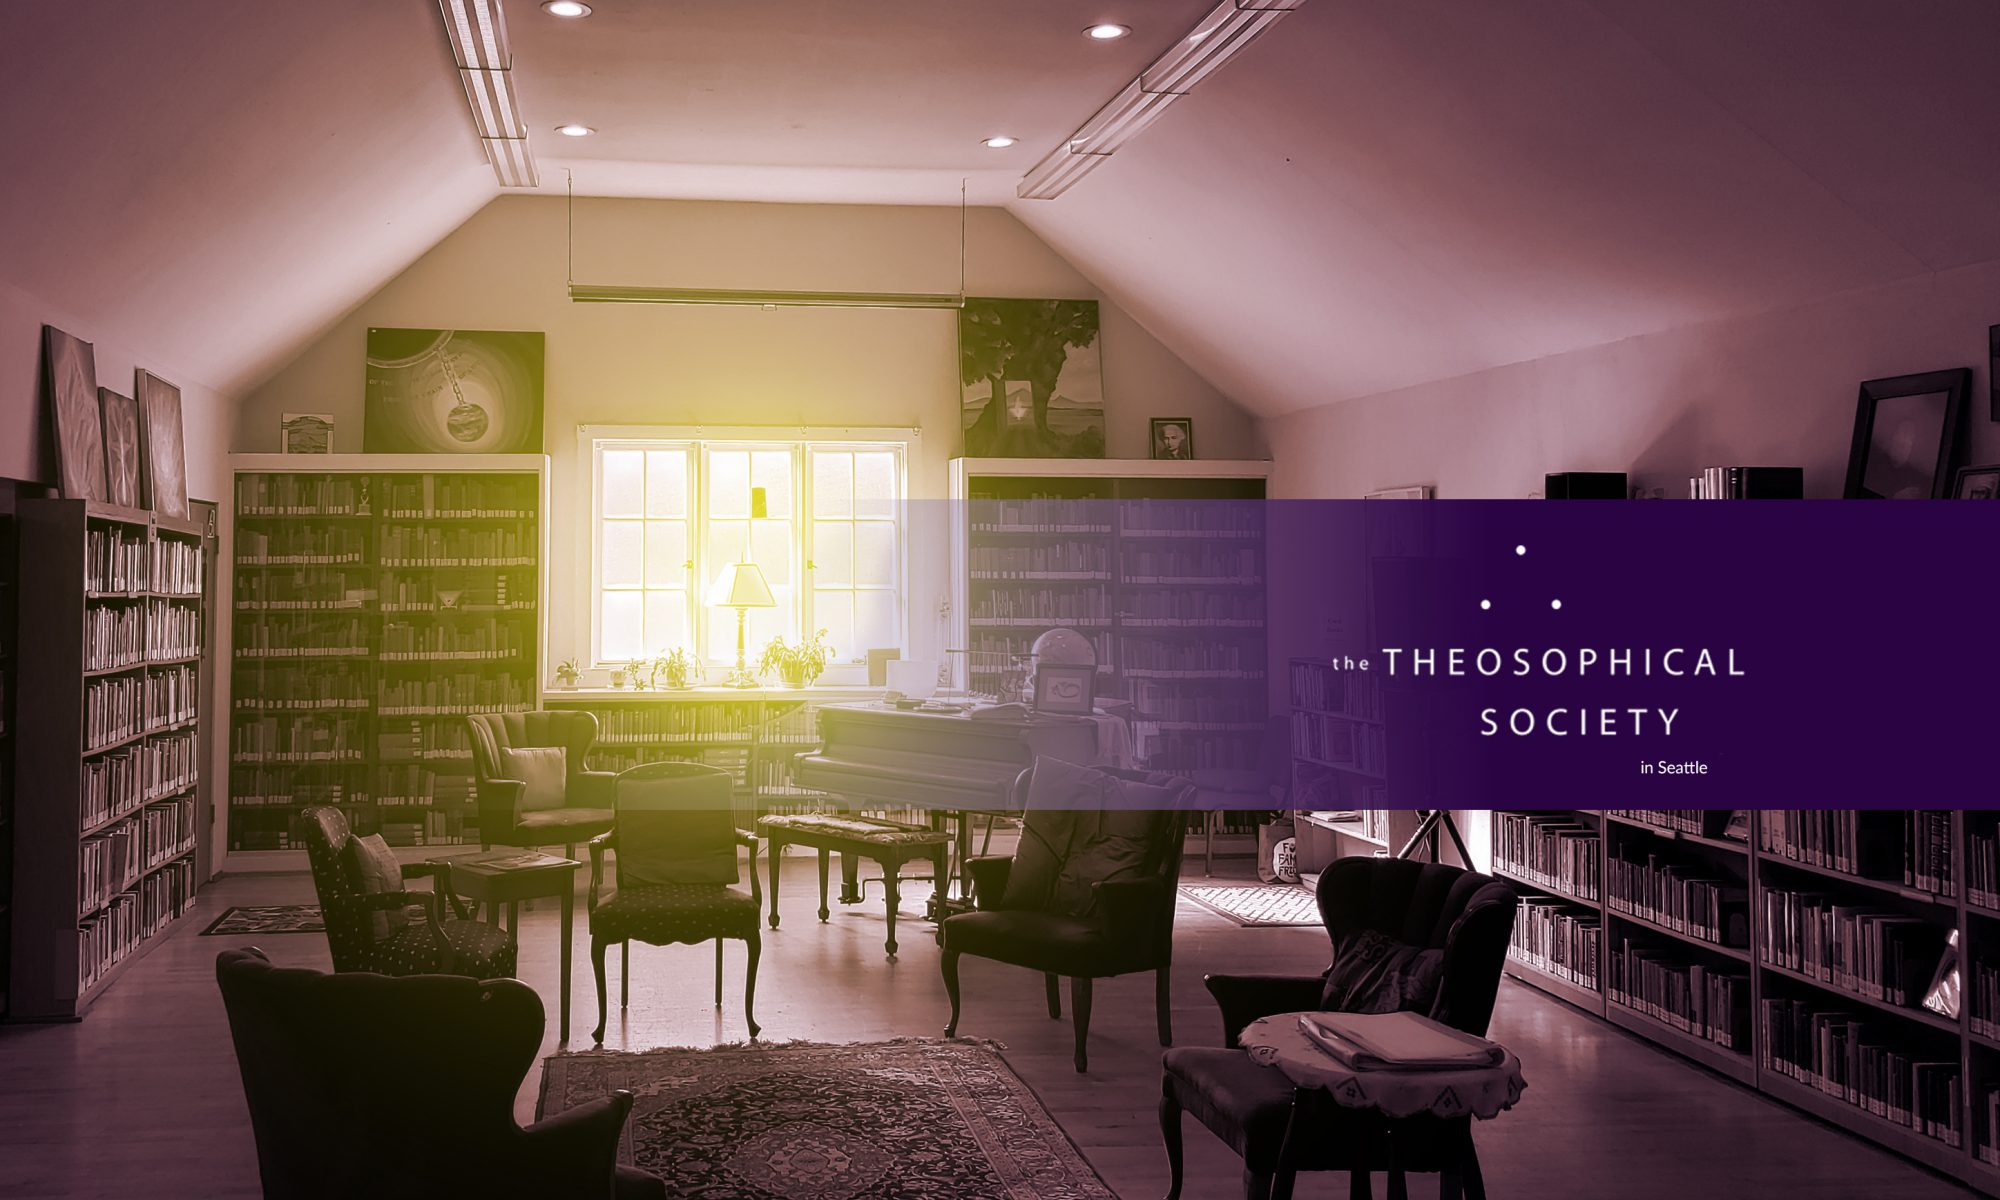 The Theosophical Society in Seattle